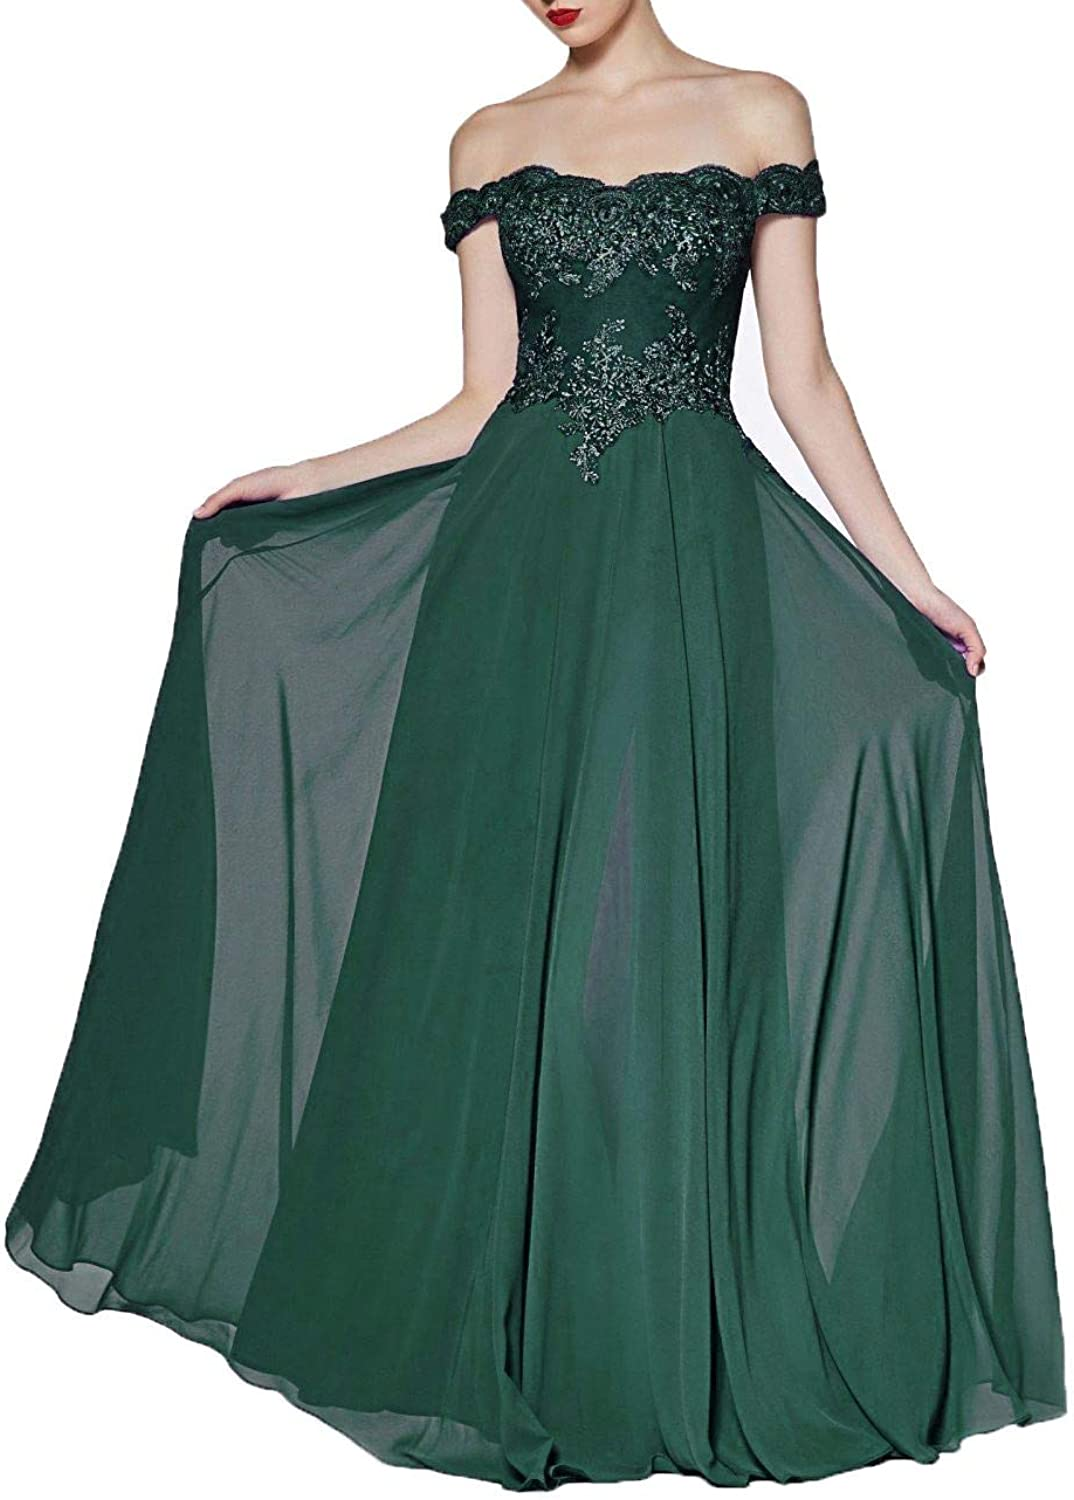 Wanshaqin Women's Aline OffShoulder Long Evening Gown Prom Formal Dress Bridesmaid Gown for Events Party